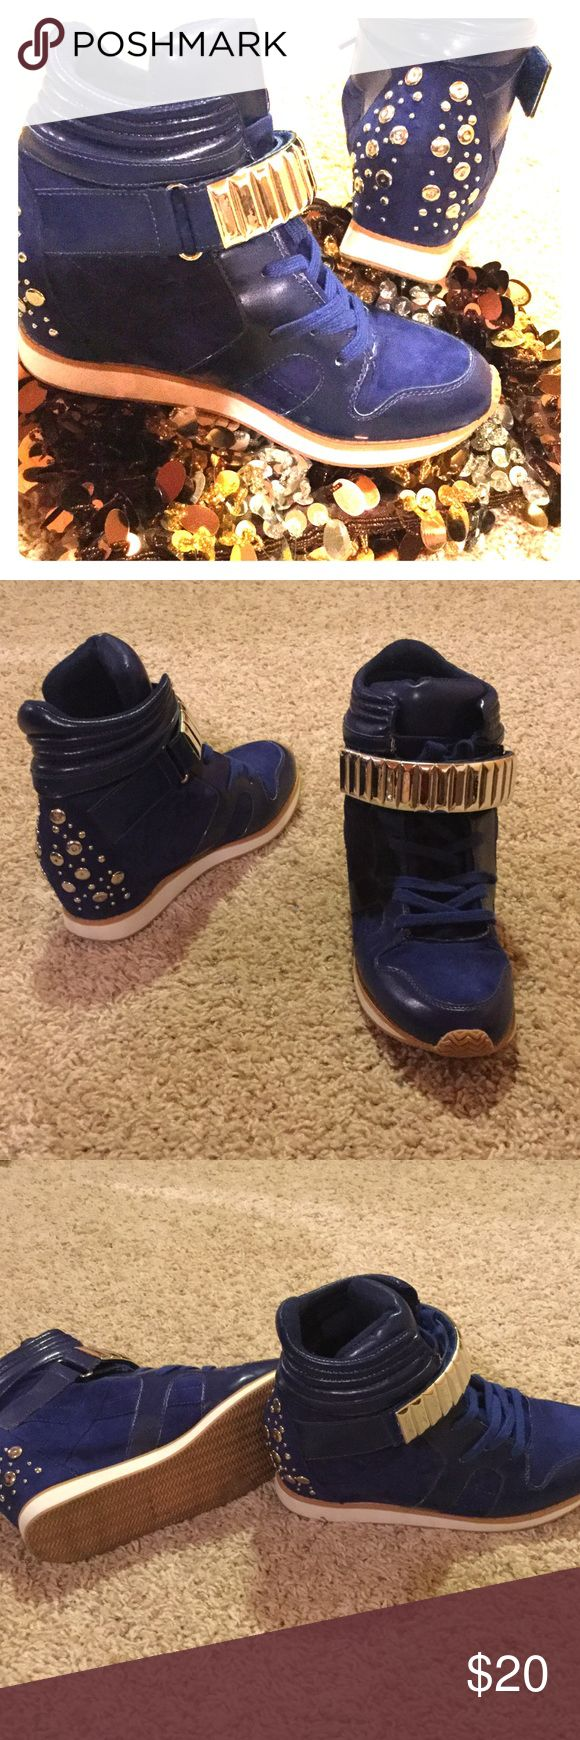 ❄️SALE⛄️🌲Blue Studded Qupid Wedge Sneakers Royal blue and silver. Wedge Sneakers - Women's Shoes On Trend: Atheletic Material: All Manmade Materials. Hidden Wedge Inside. Width: medium. Worn once. Qupid Shoes Sneakers